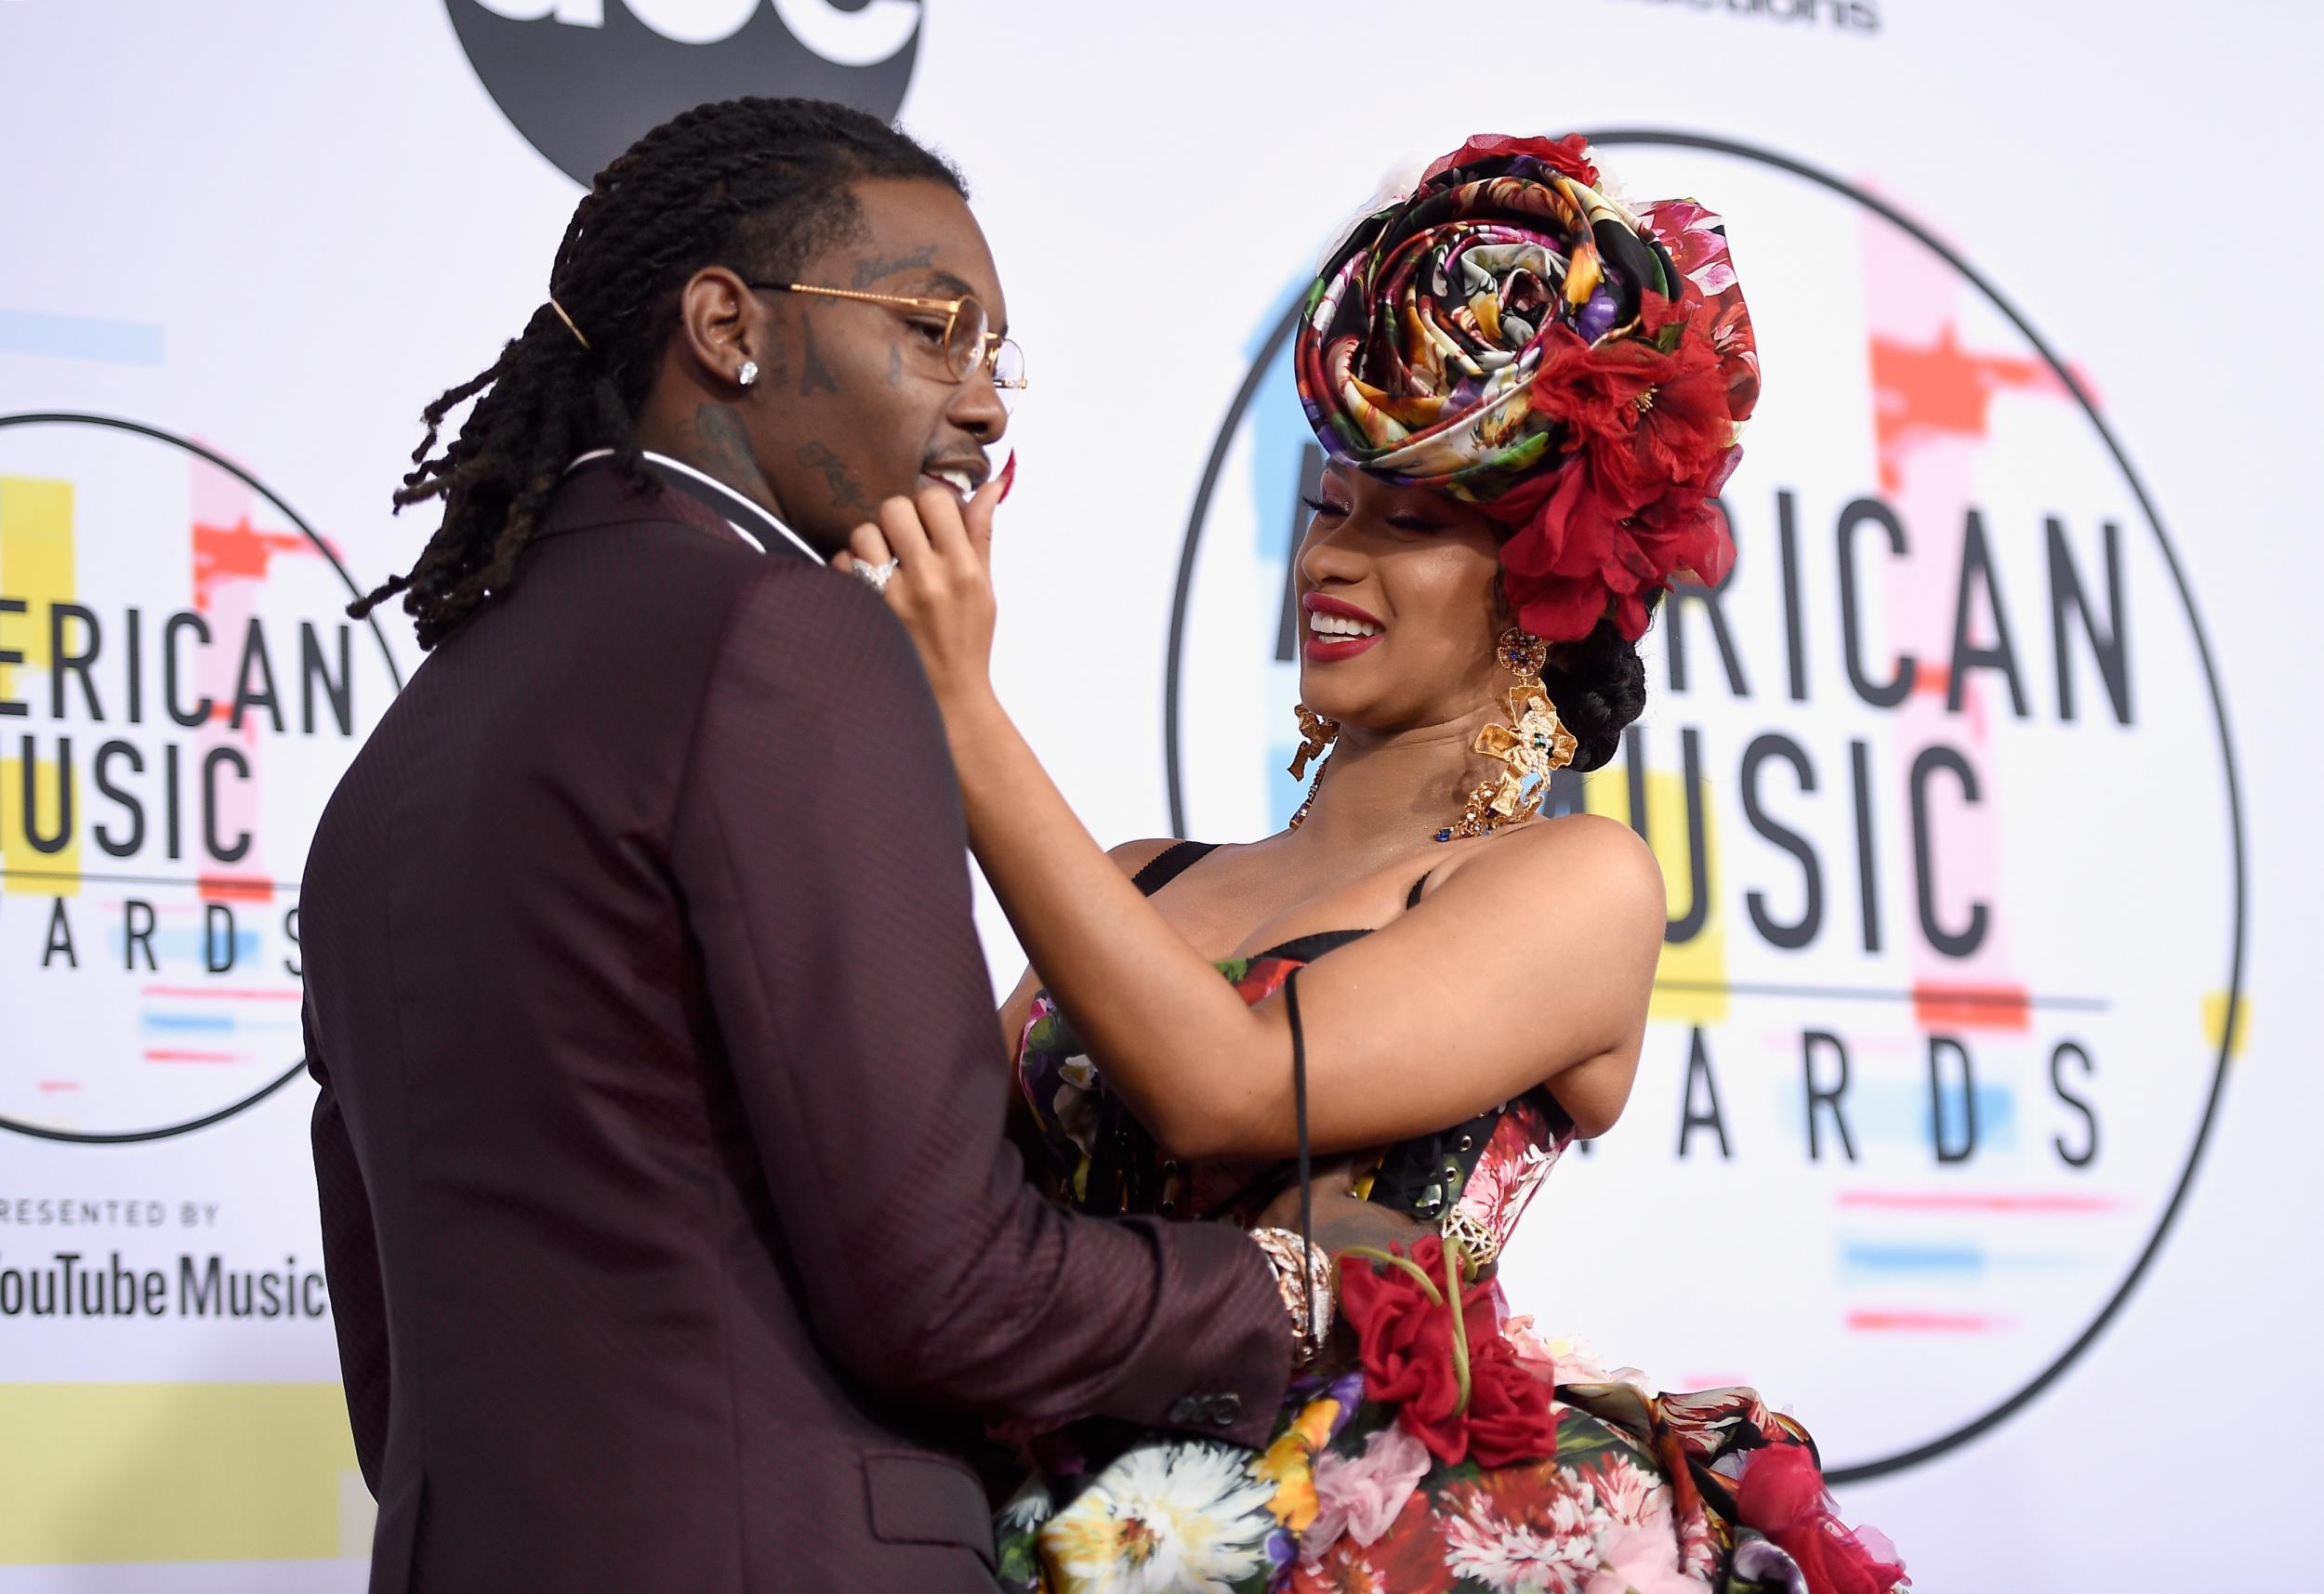 Cardi B defends Offset after he crashes Rolling Loud festival set with 'Take Me Back' sign